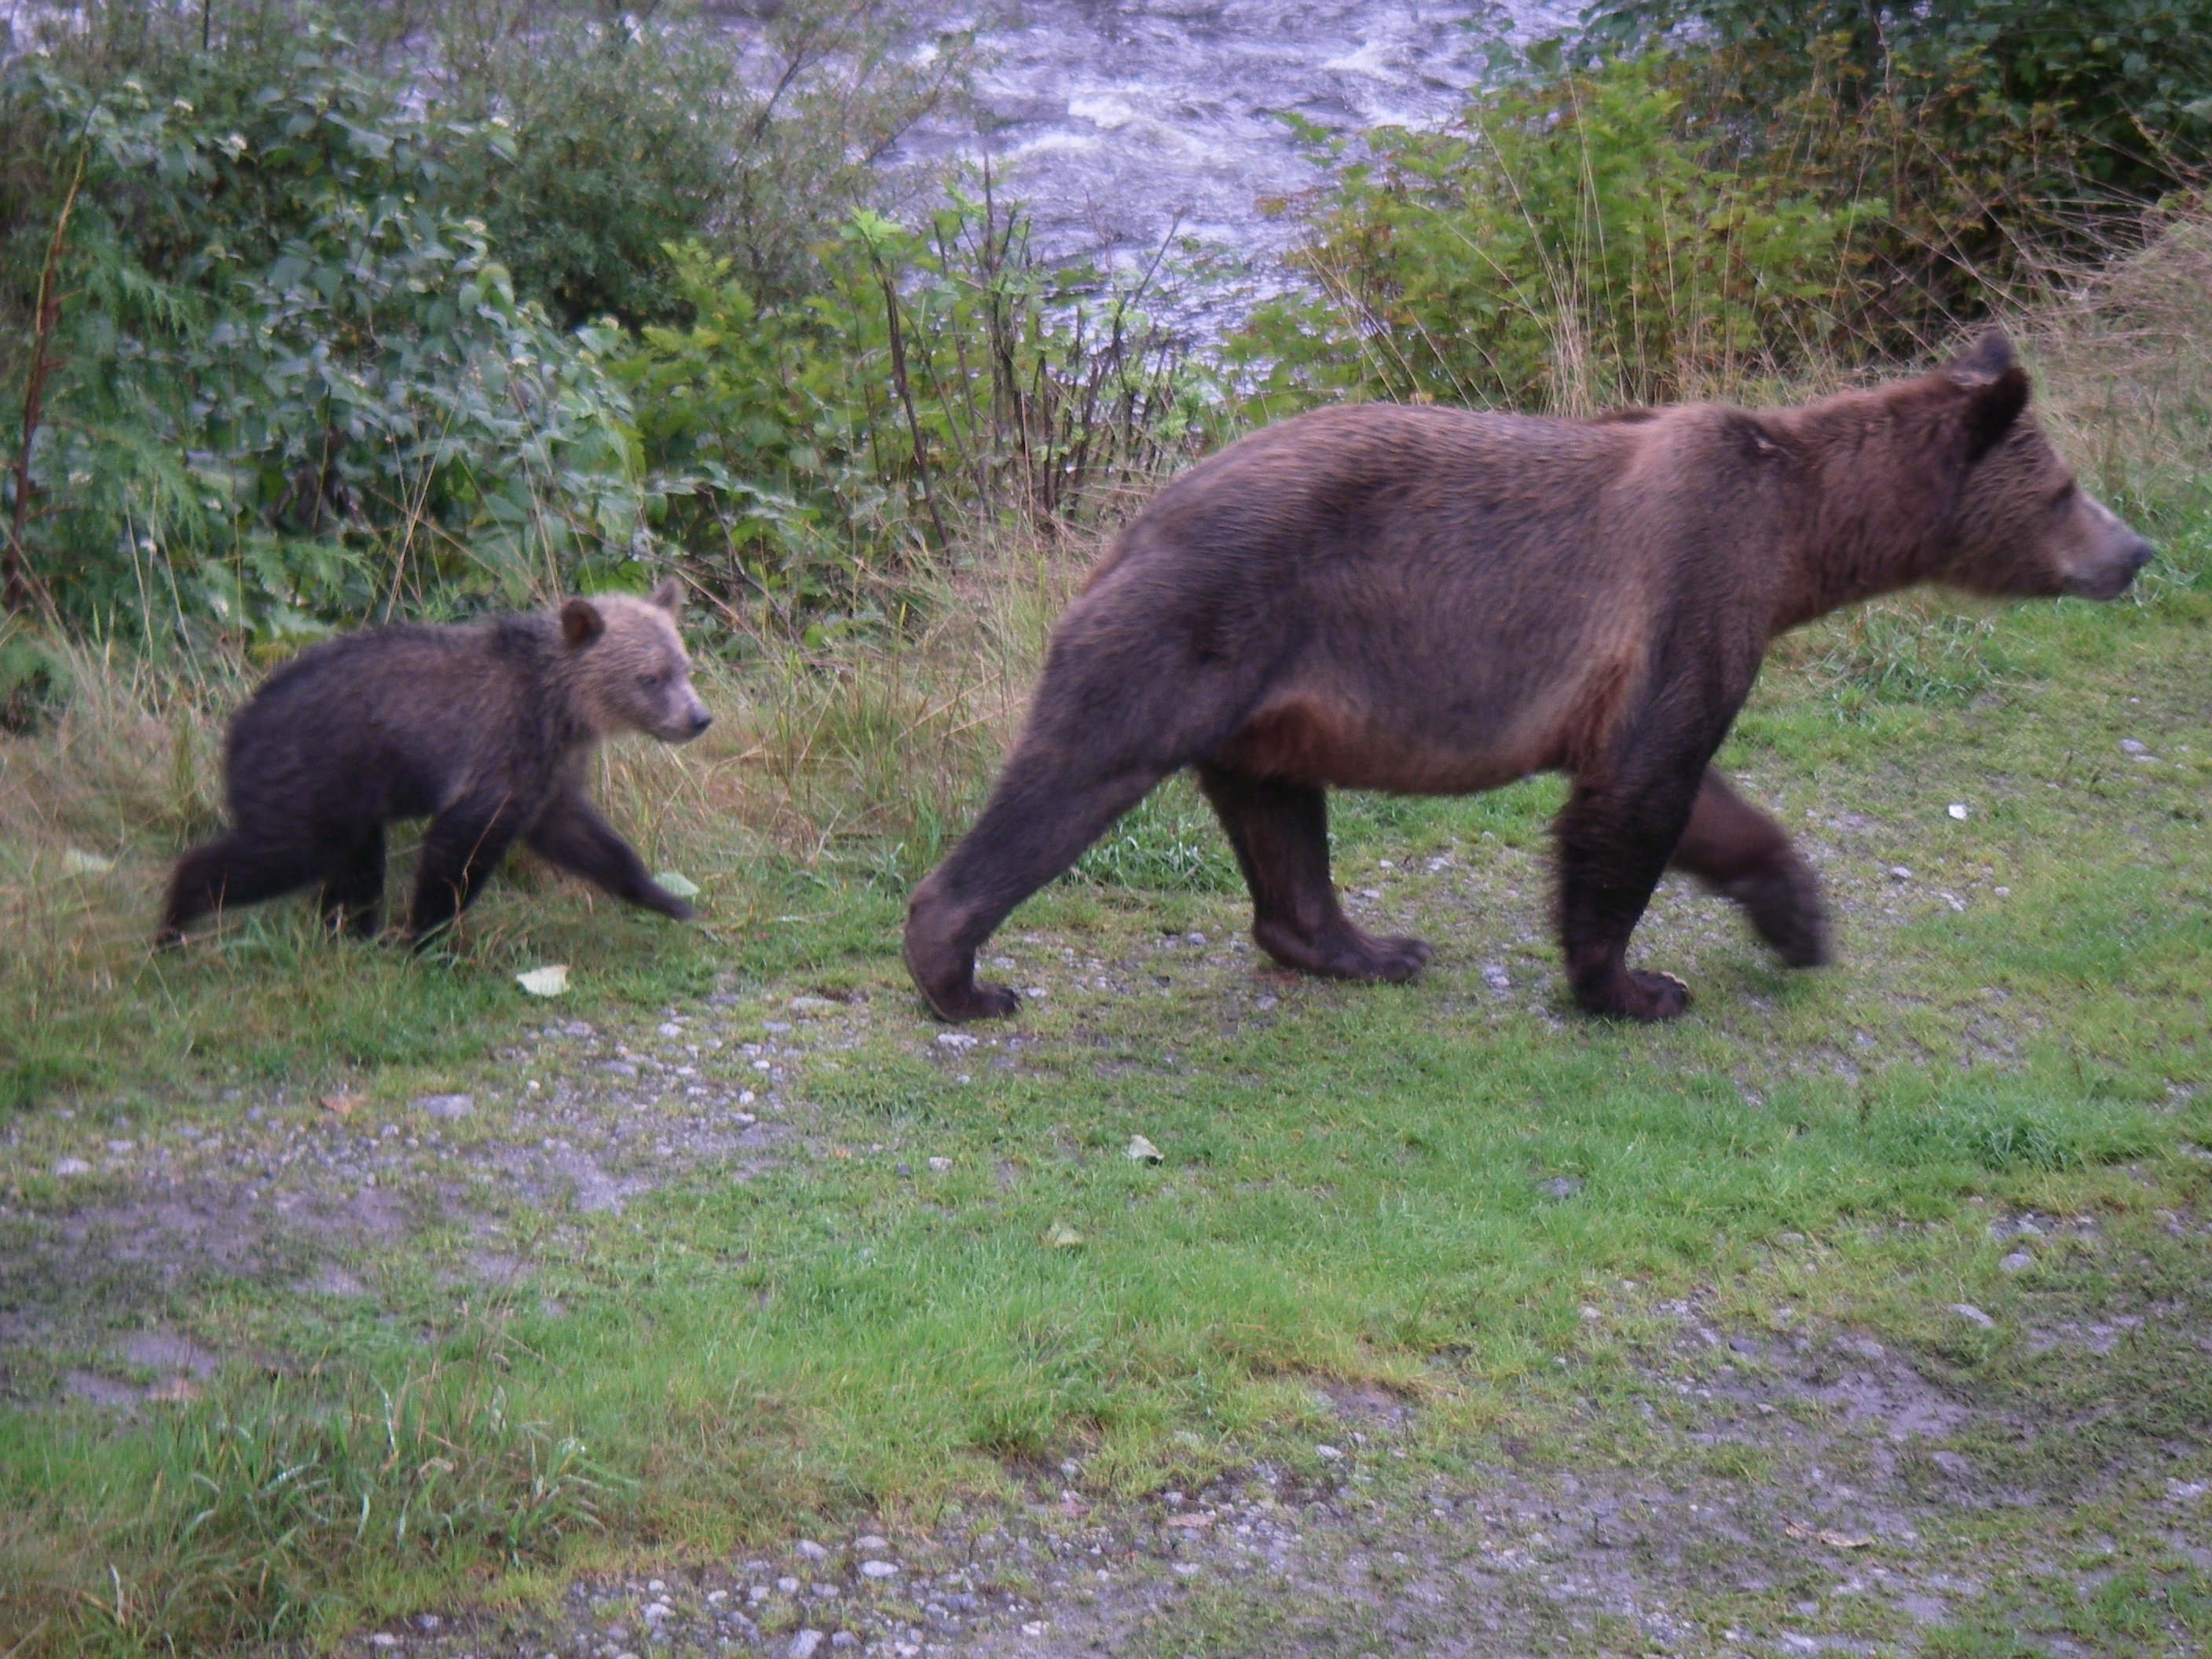 Grizzly bear walking - photo#55